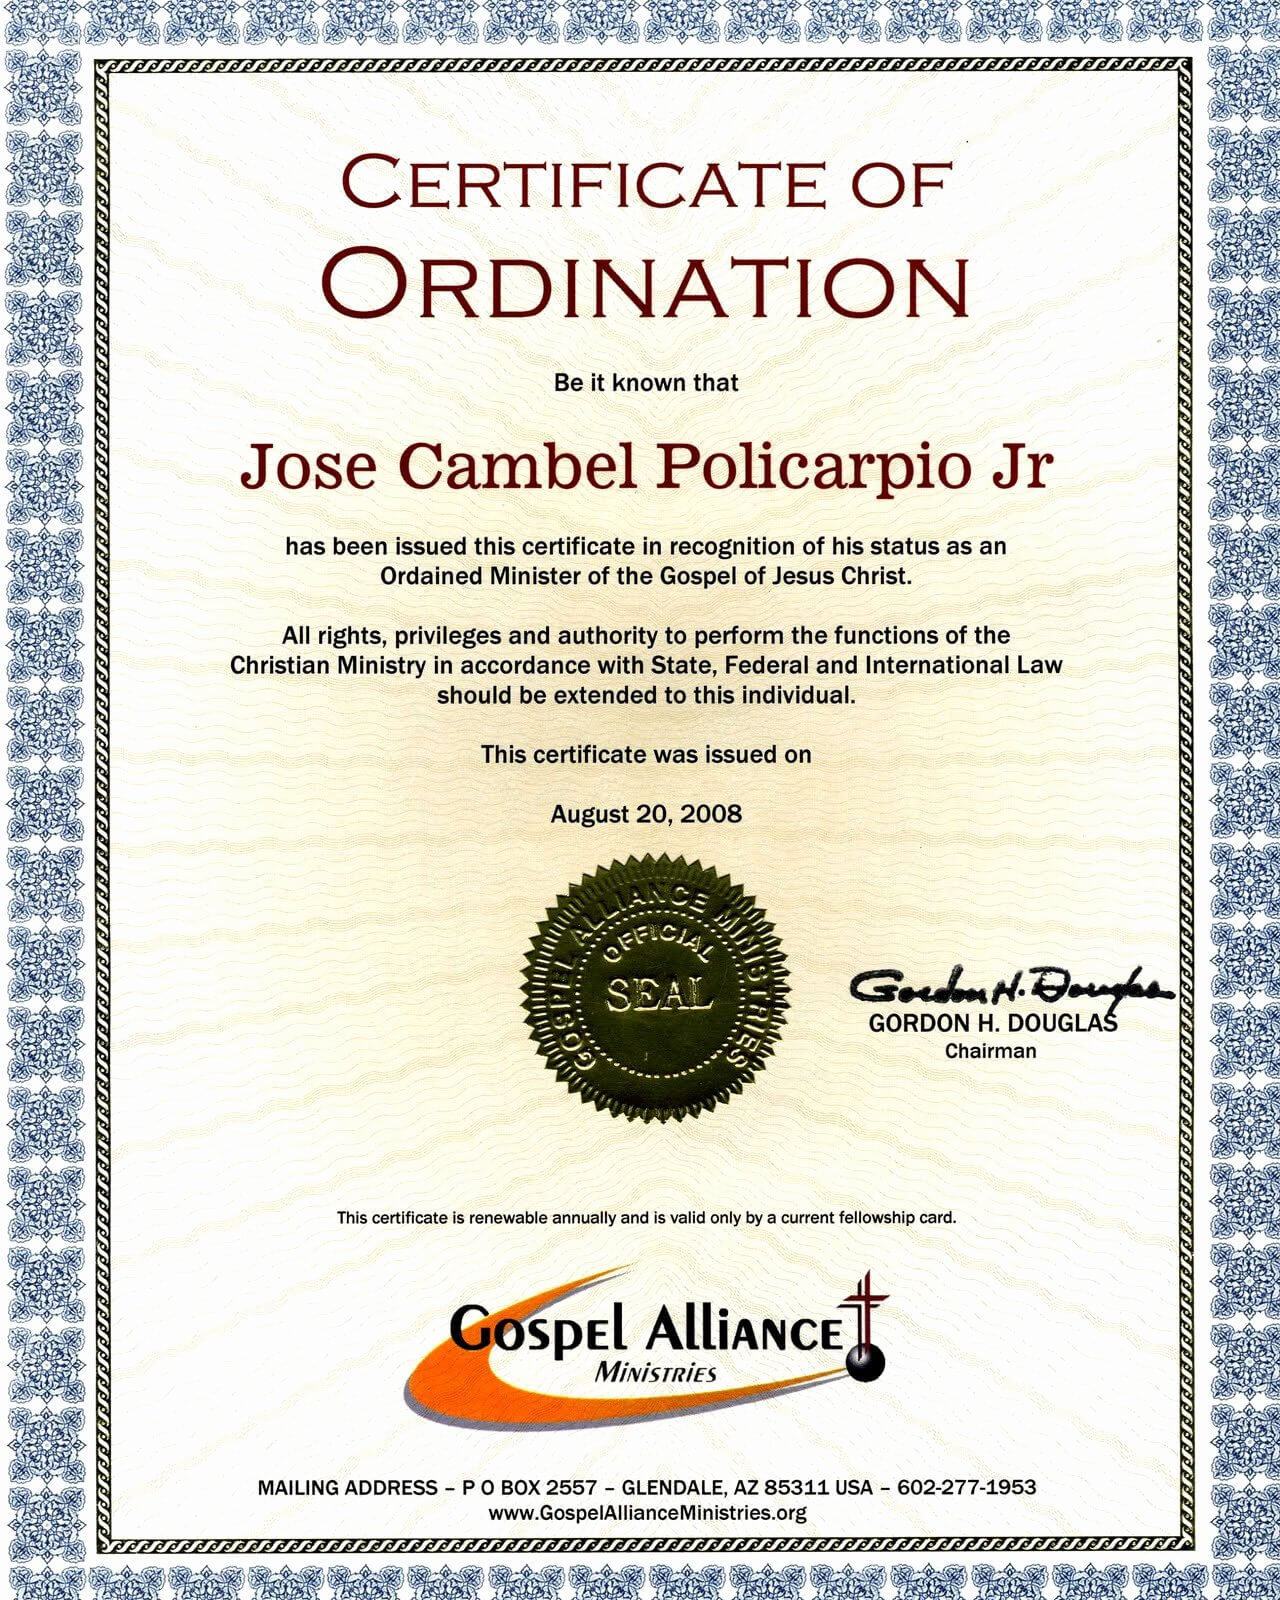 30 Minister Ordination Certificate Template | Pryncepality within Certificate Of Ordination Template